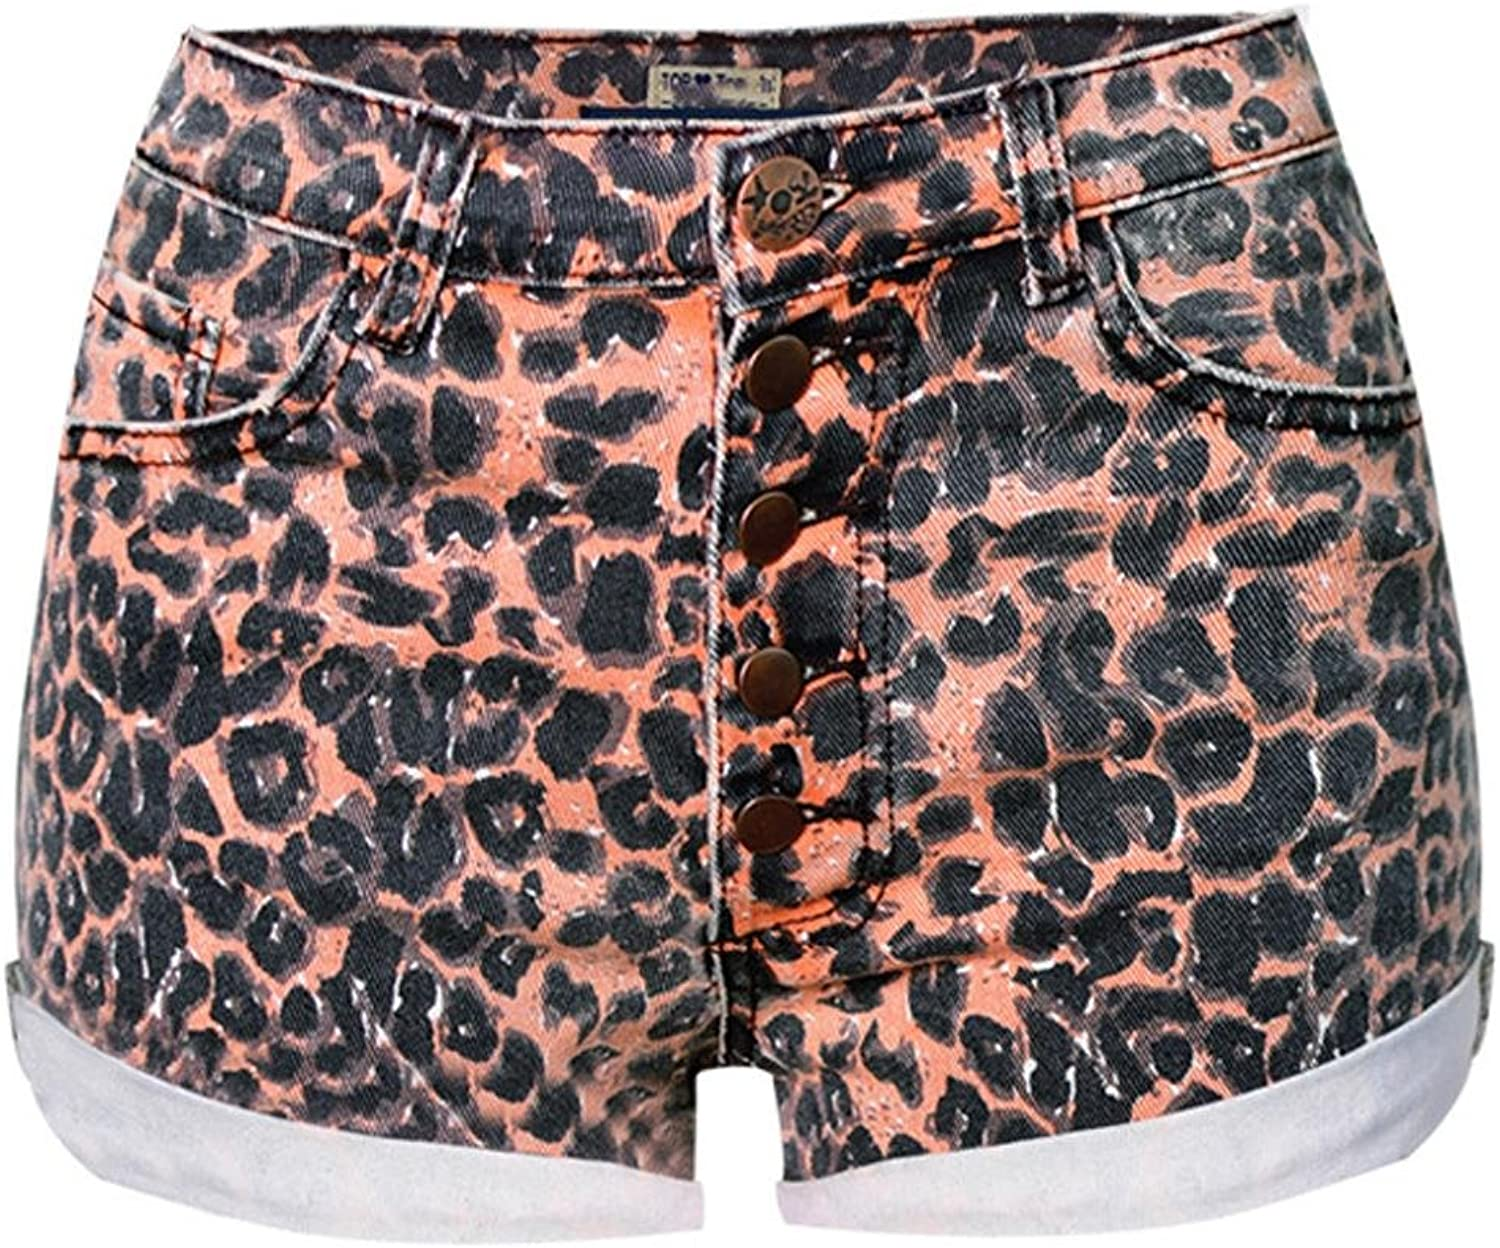 Byjia High Waist Slim Stretch Ladies Buckle Shorts Leopard Denim Jeans Party Mini Pants